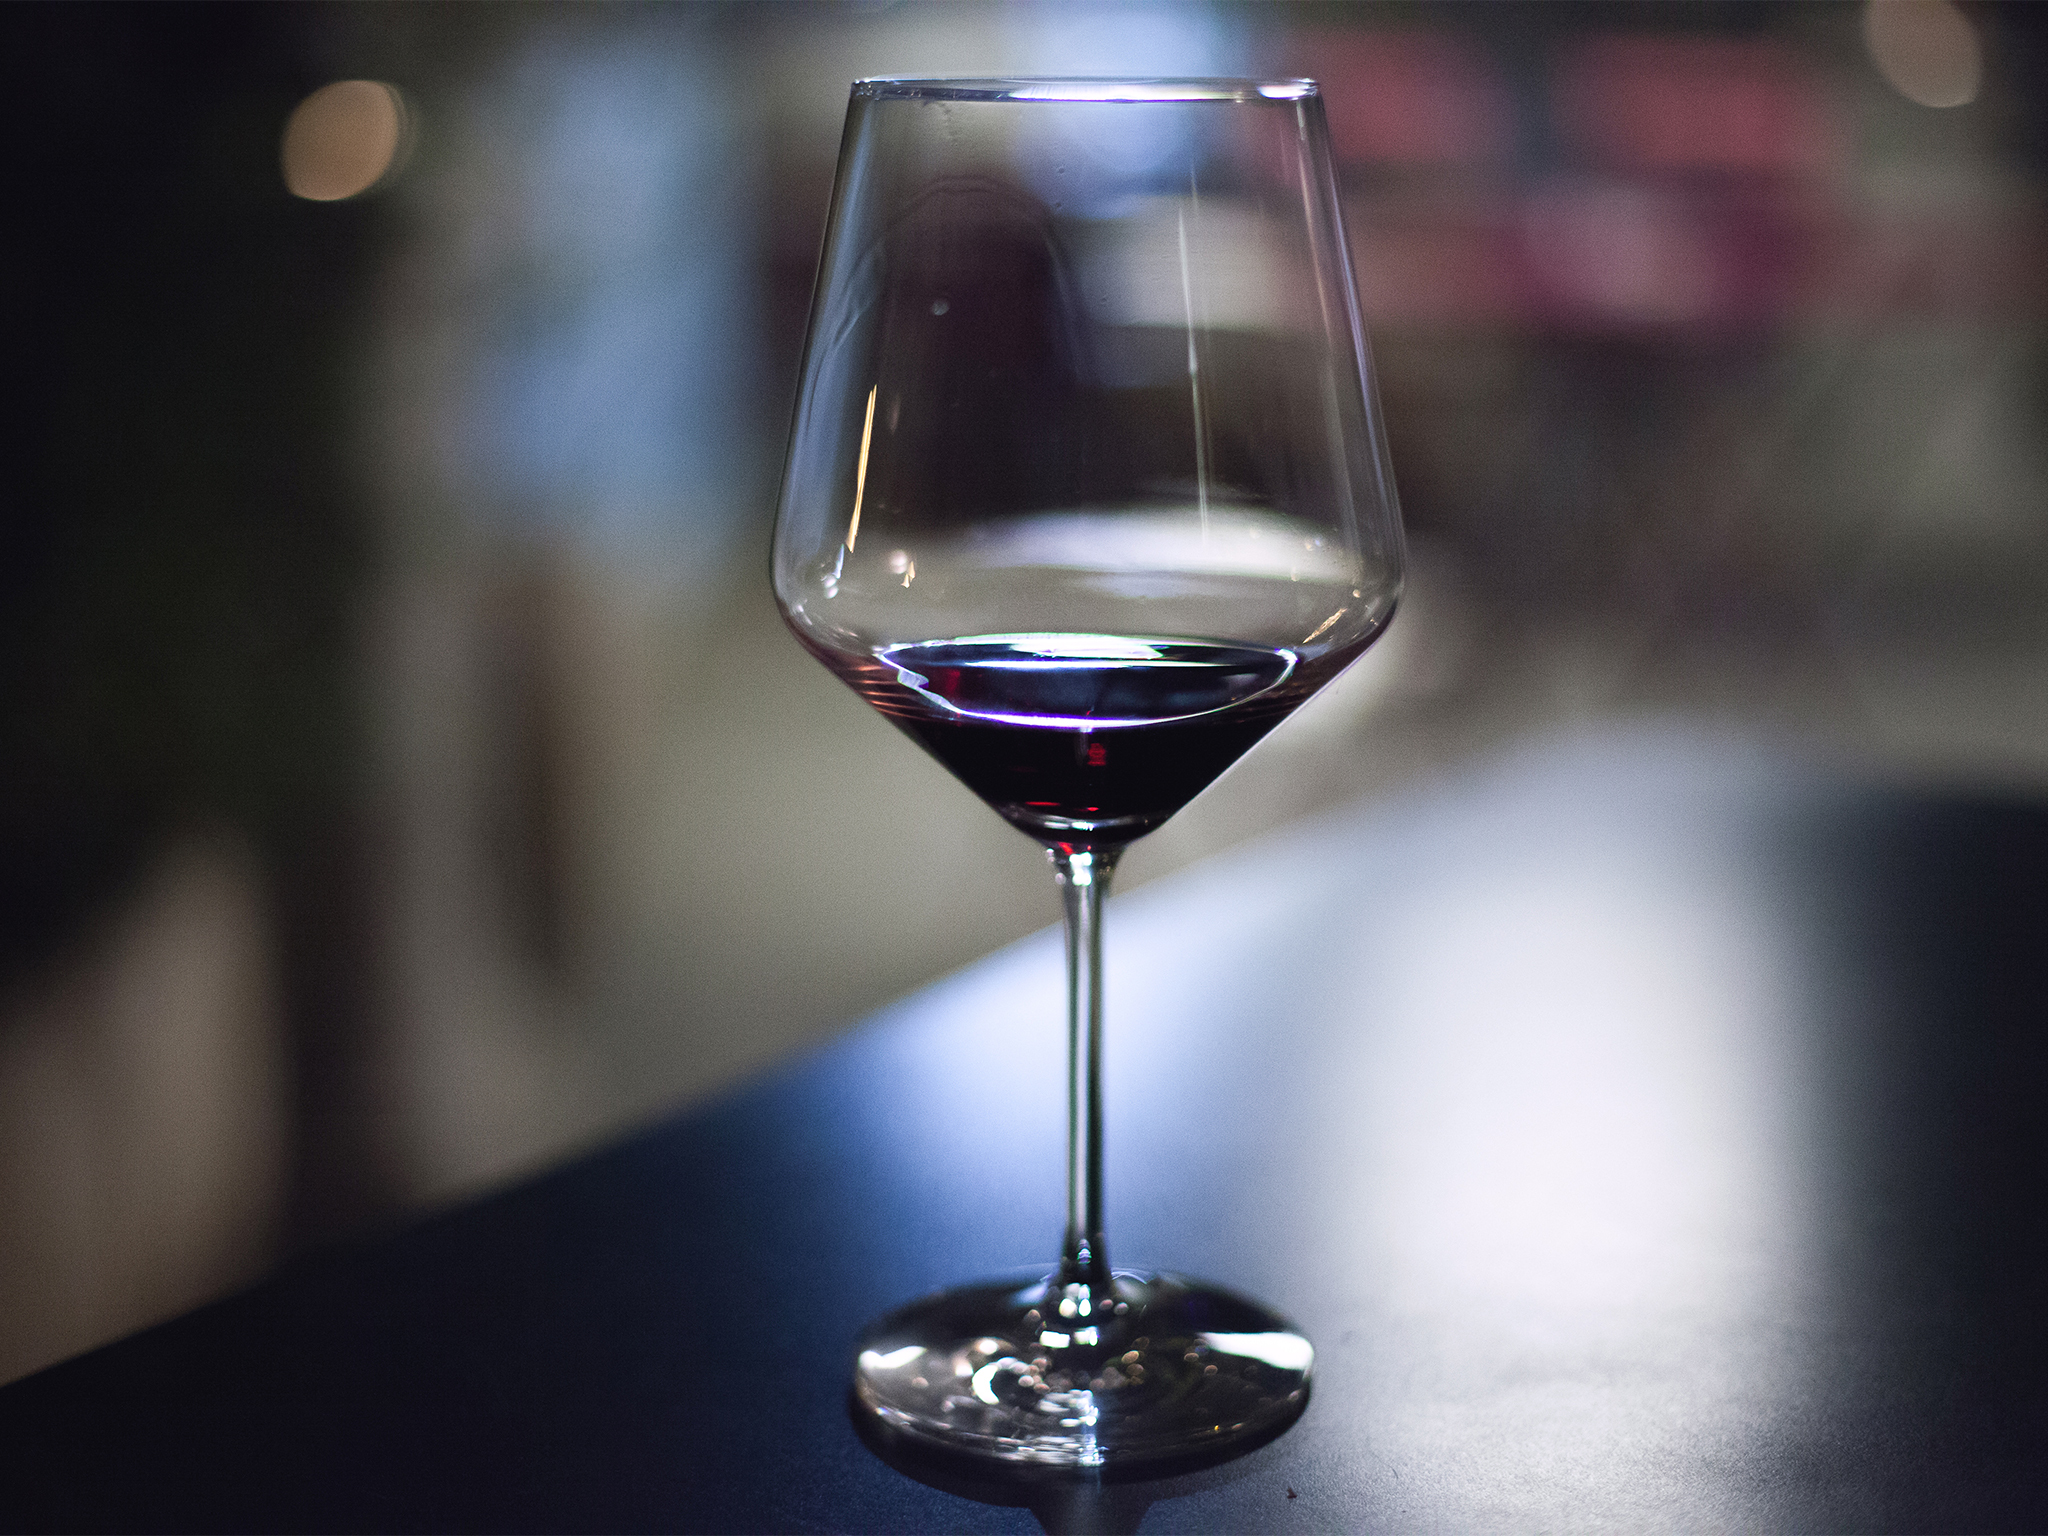 A wine glass with some red wine in it